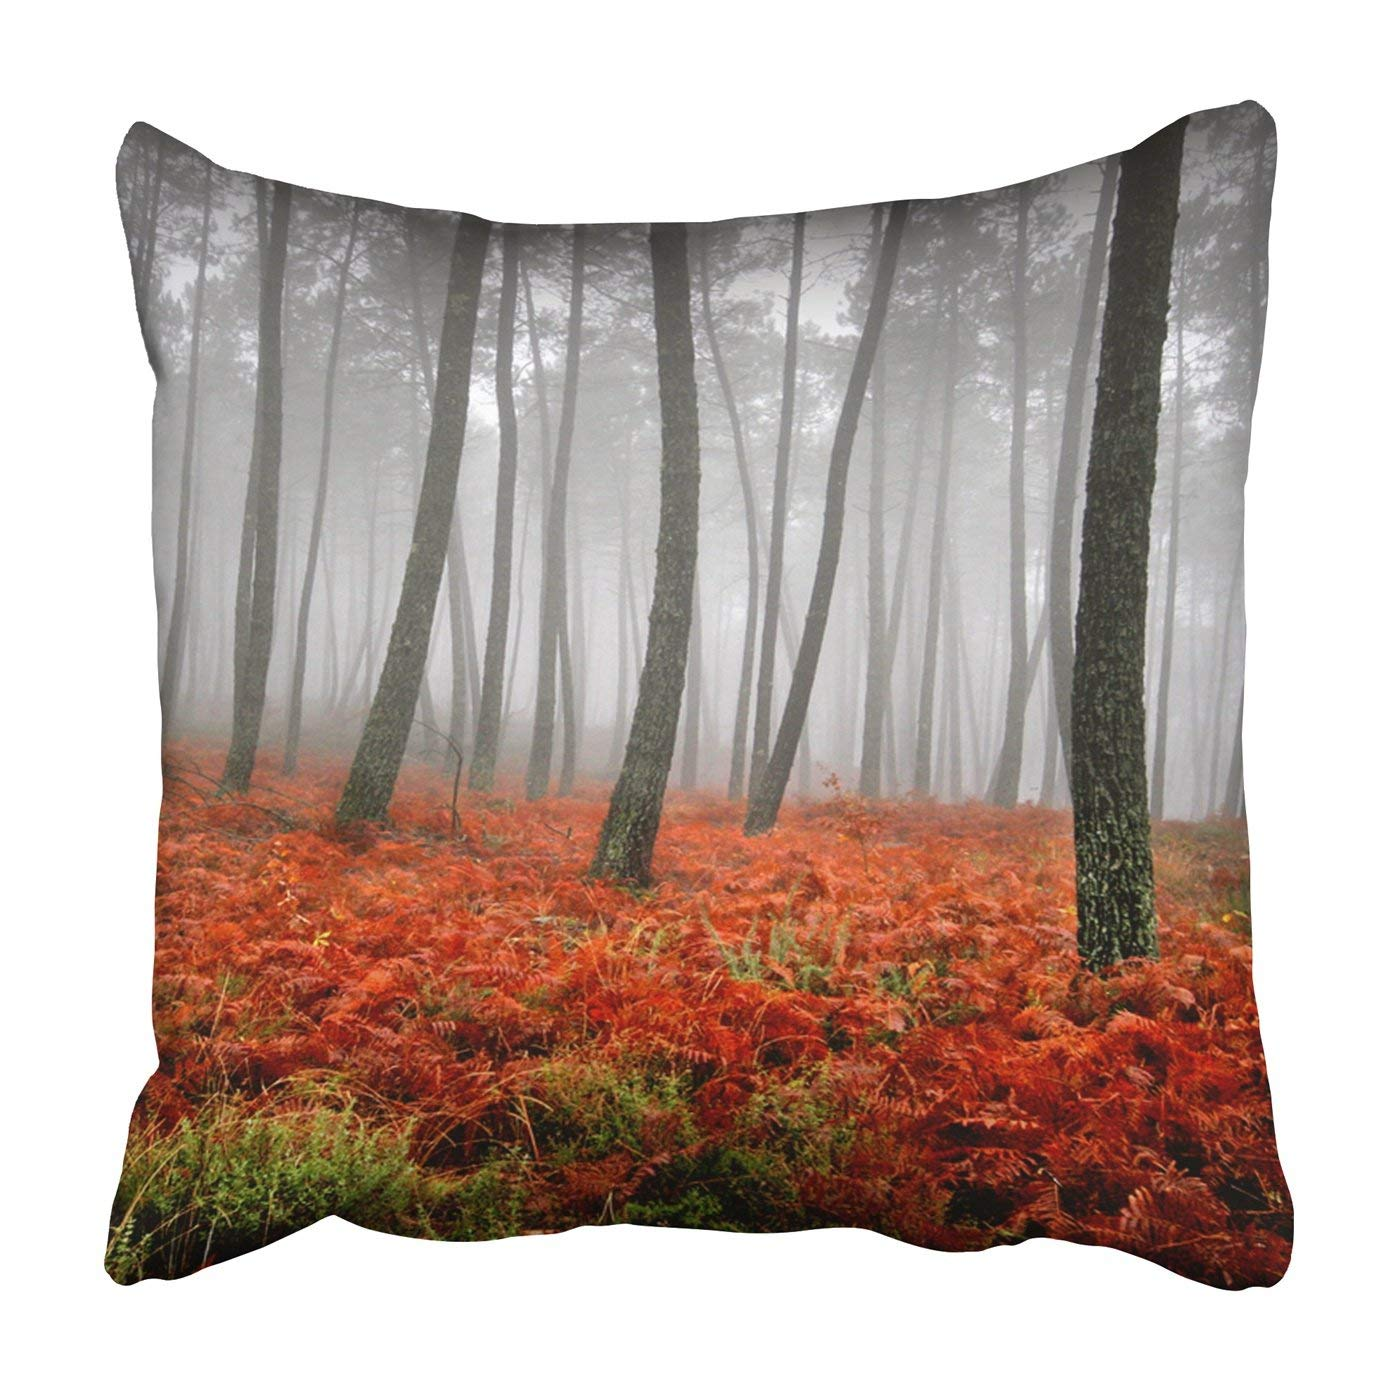 WOPOP beautiful light in a green and beautiful forest Pillowcase Throw Pillow Cover Case 16x16 inches